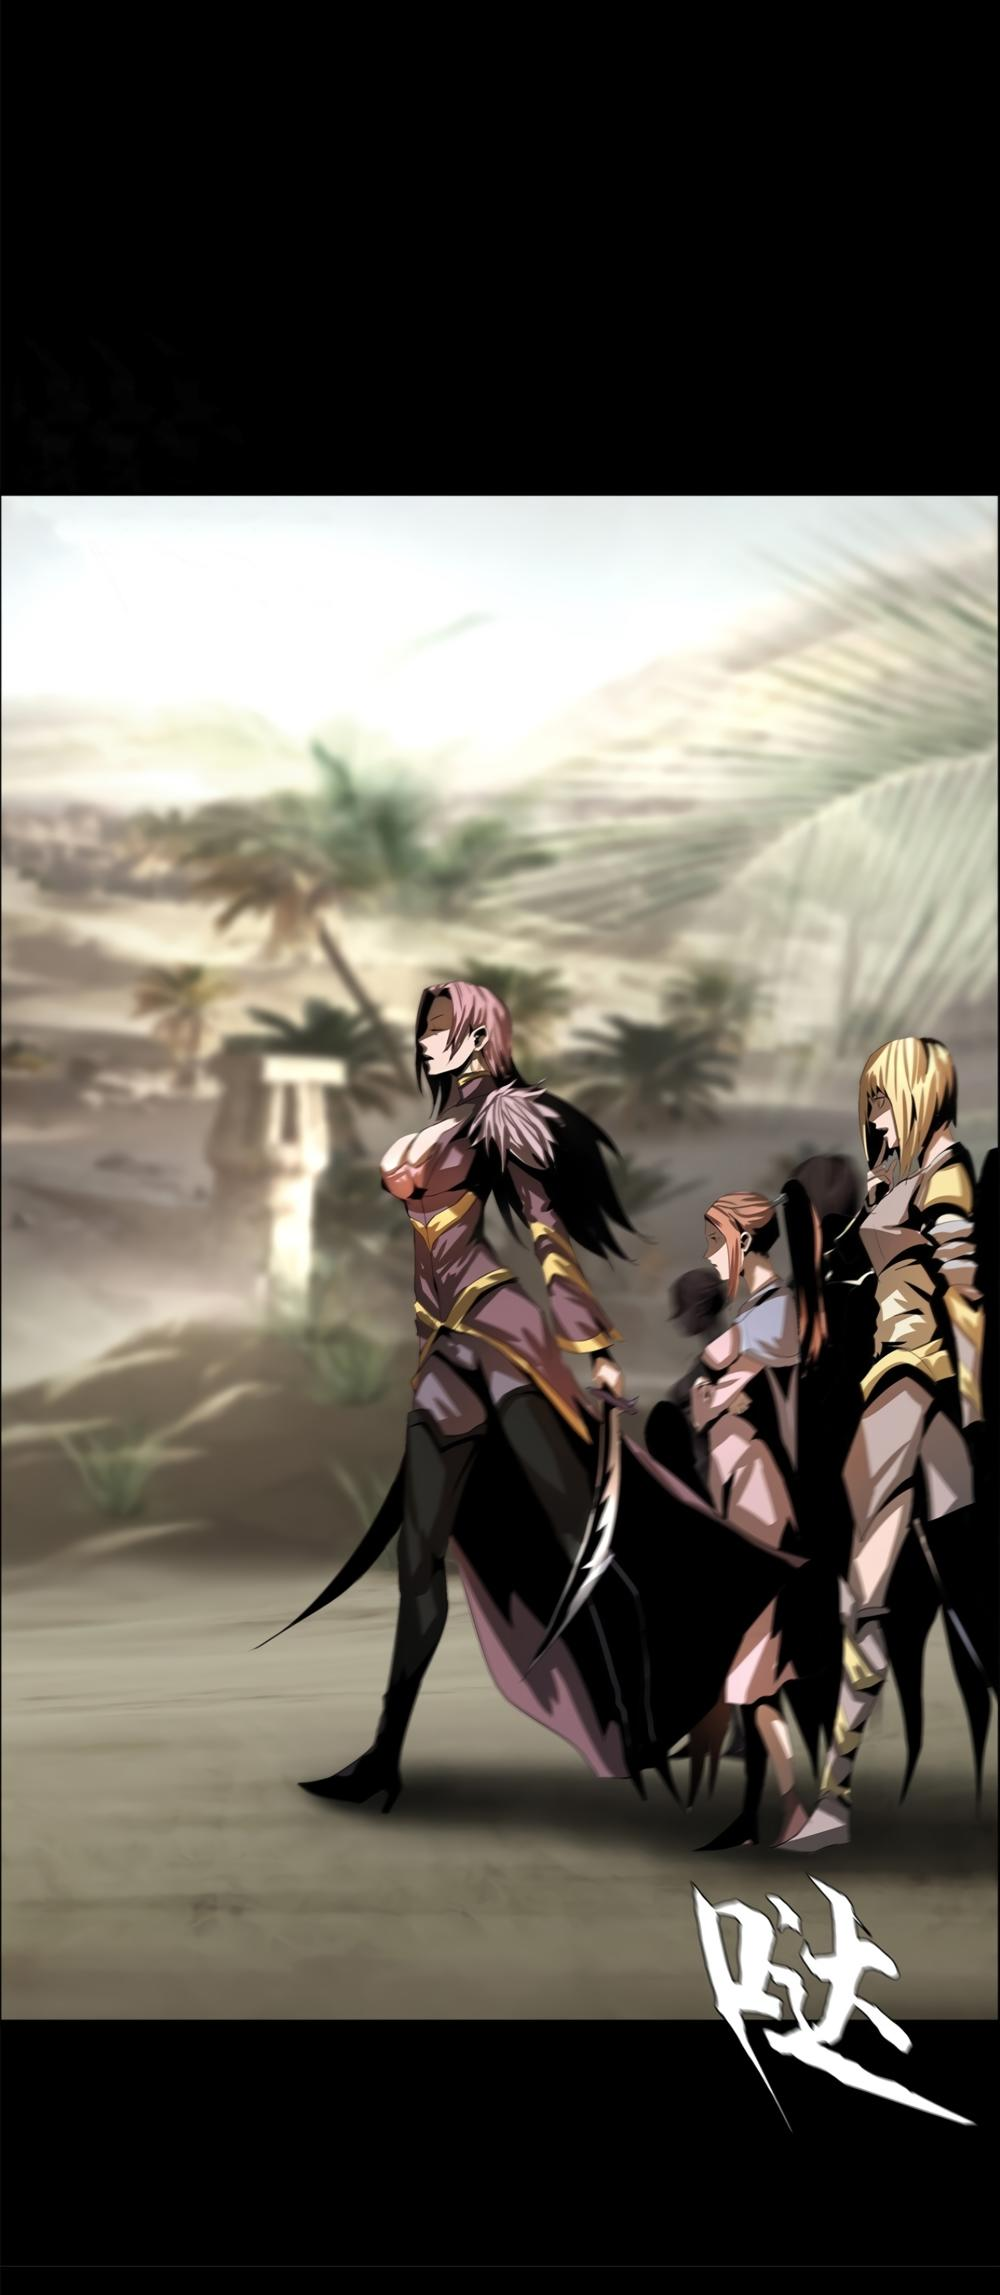 The Blade Of Evolution-Walking Alone In The Dungeon Chapter 37 page 17 - Mangakakalots.com